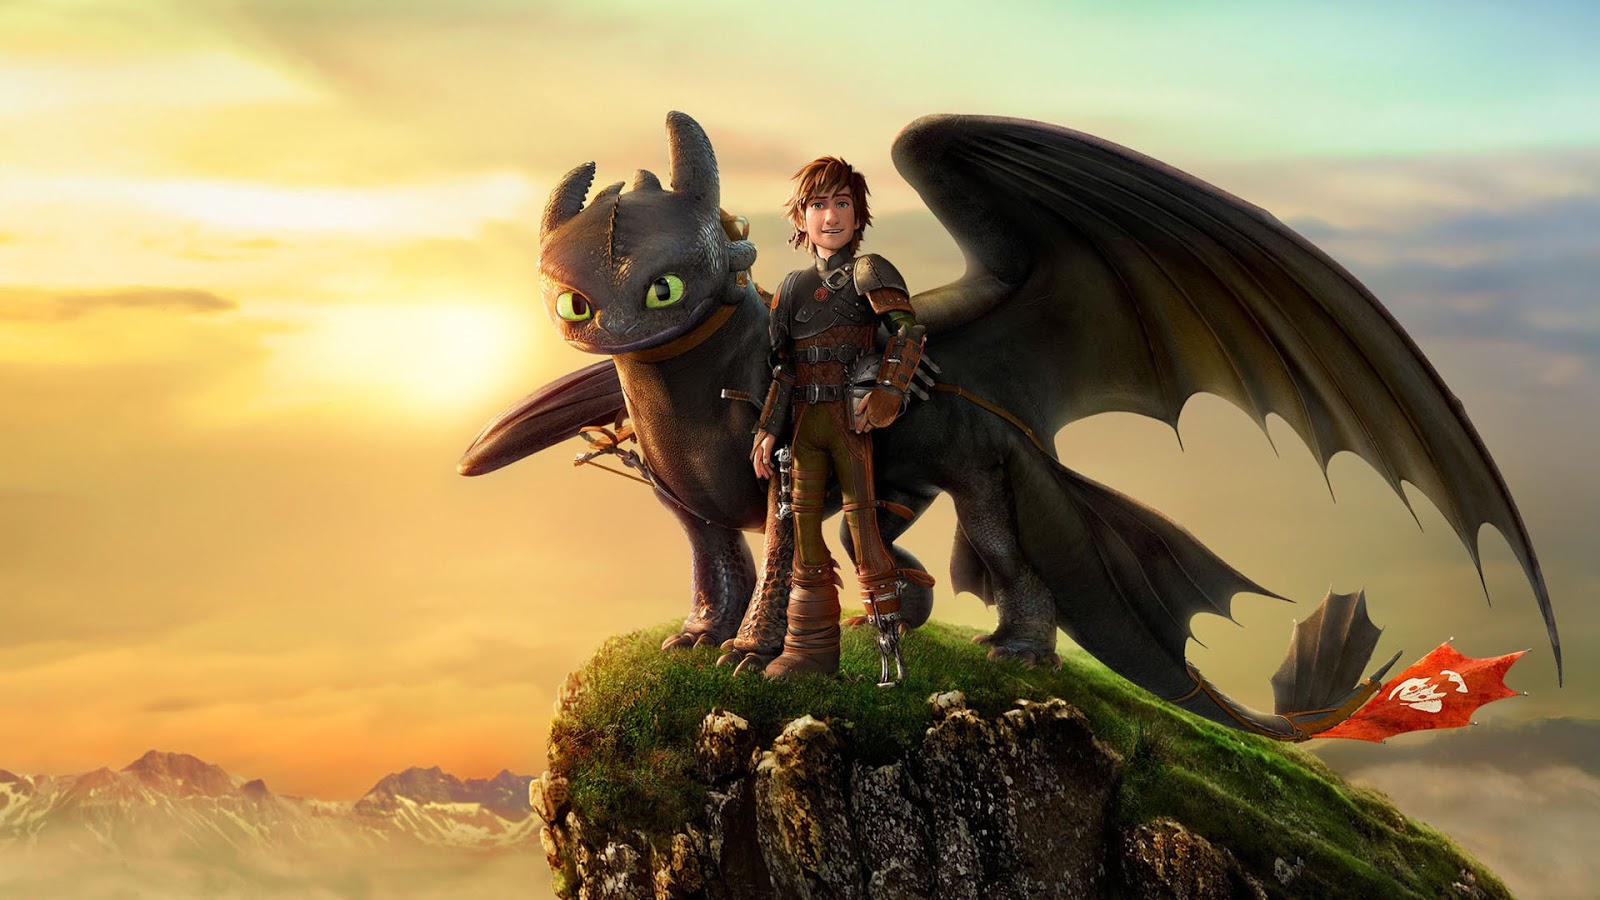 Hiccup (voiced by Jay Baruchel) and his tamed dragon Toothless in How to Train Your Dragon (2010)